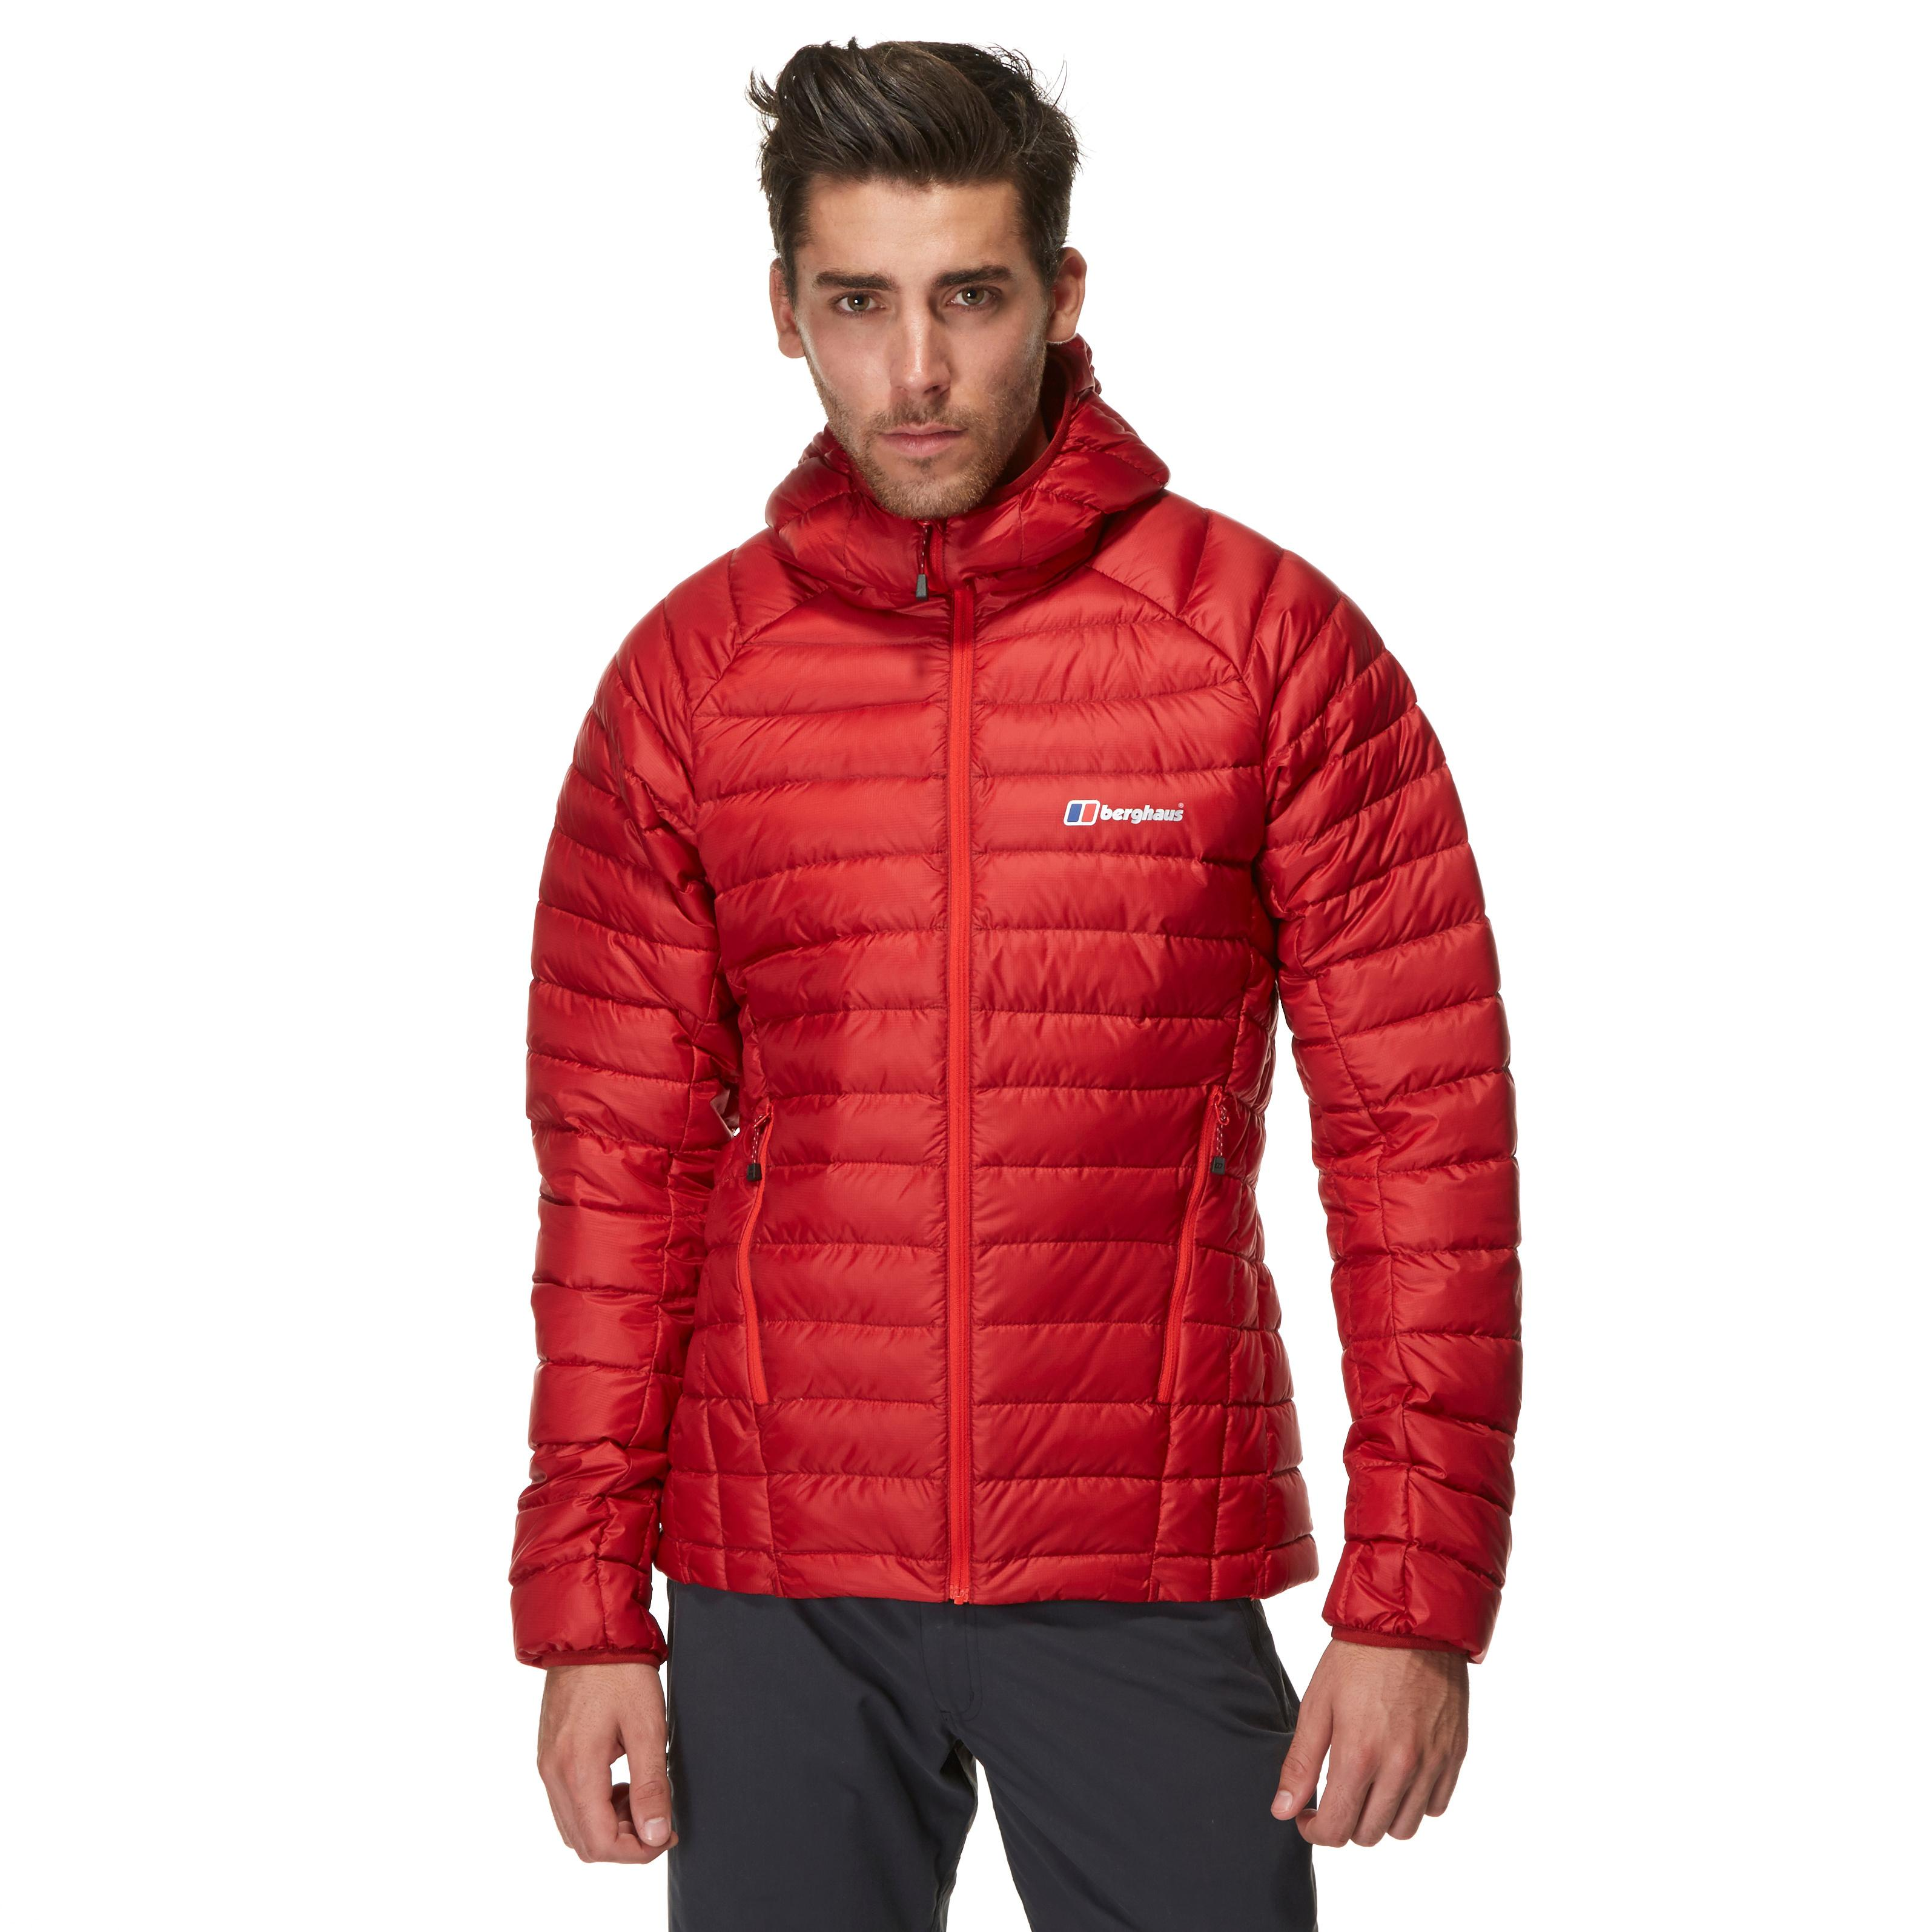 red jacket men Jackets from gap are trendy and look fantastic every flattering jacket is available for men, women, kids, toddlers and babies in vibrant styles and fabrics.